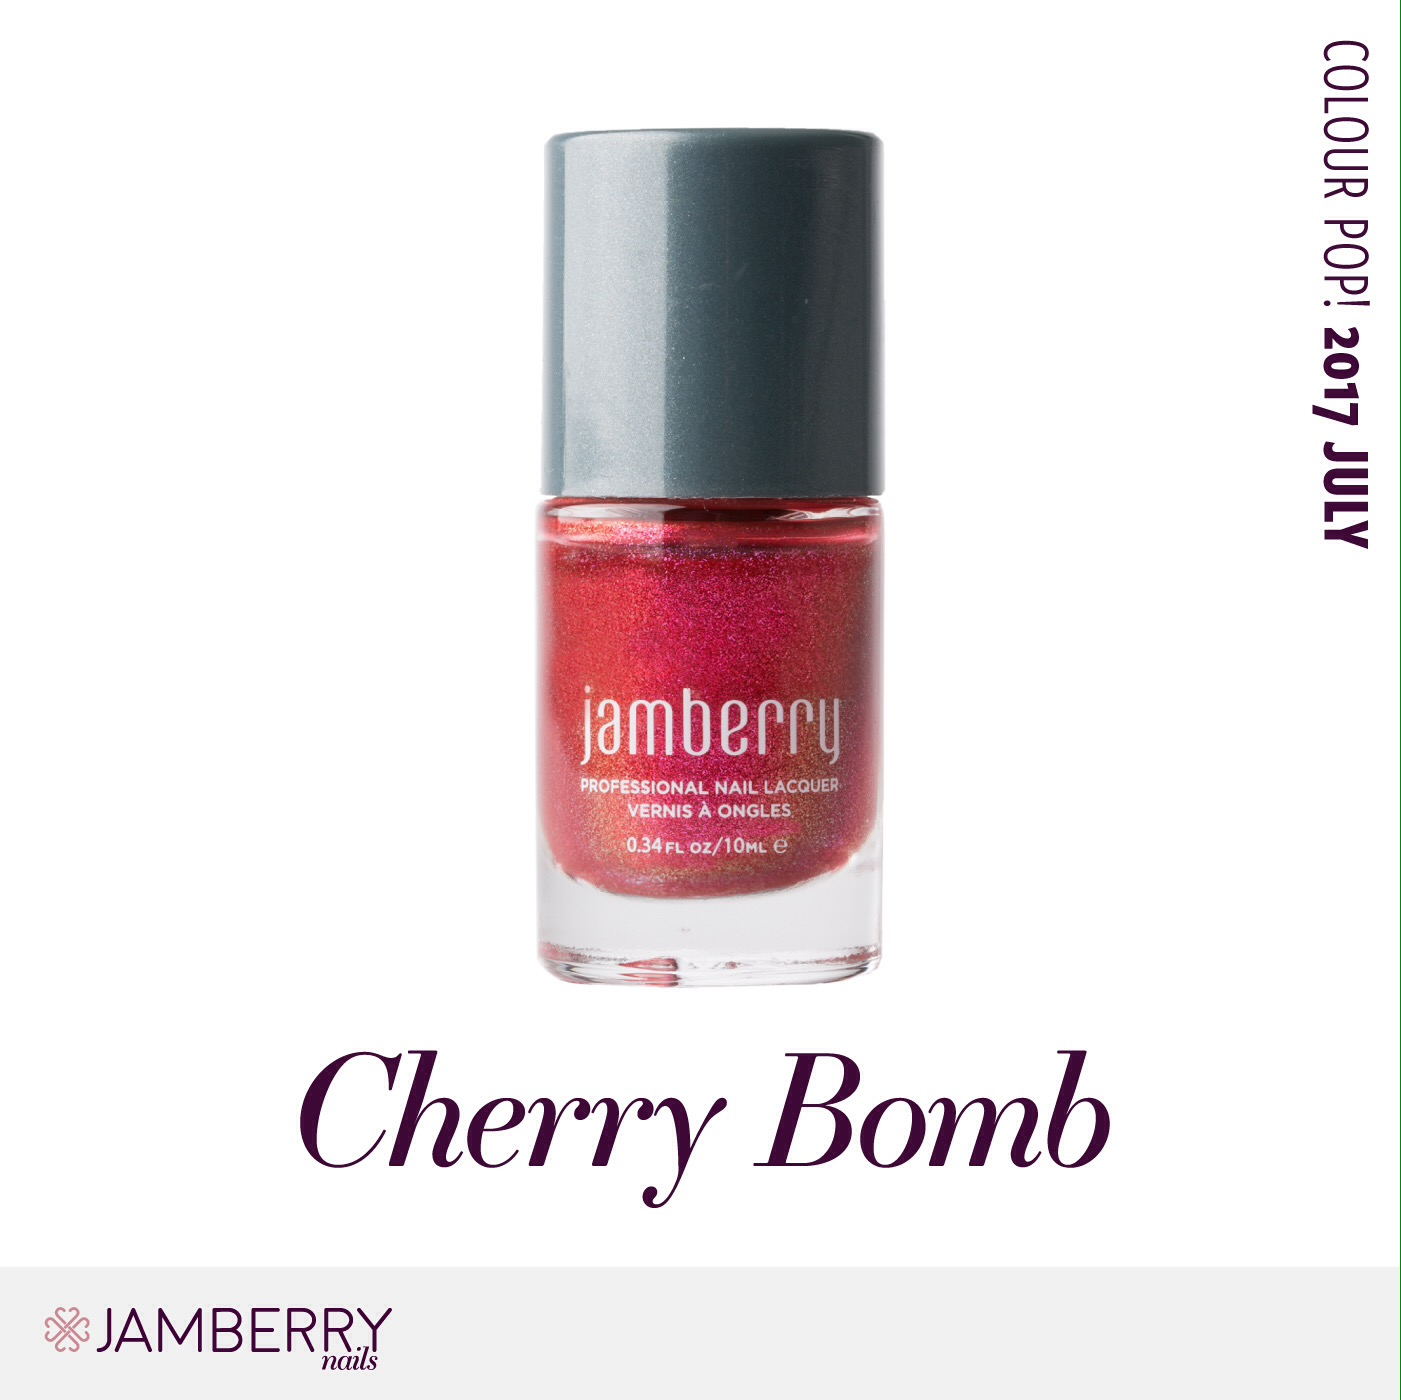 July Colour Pop – Cherry Bomb